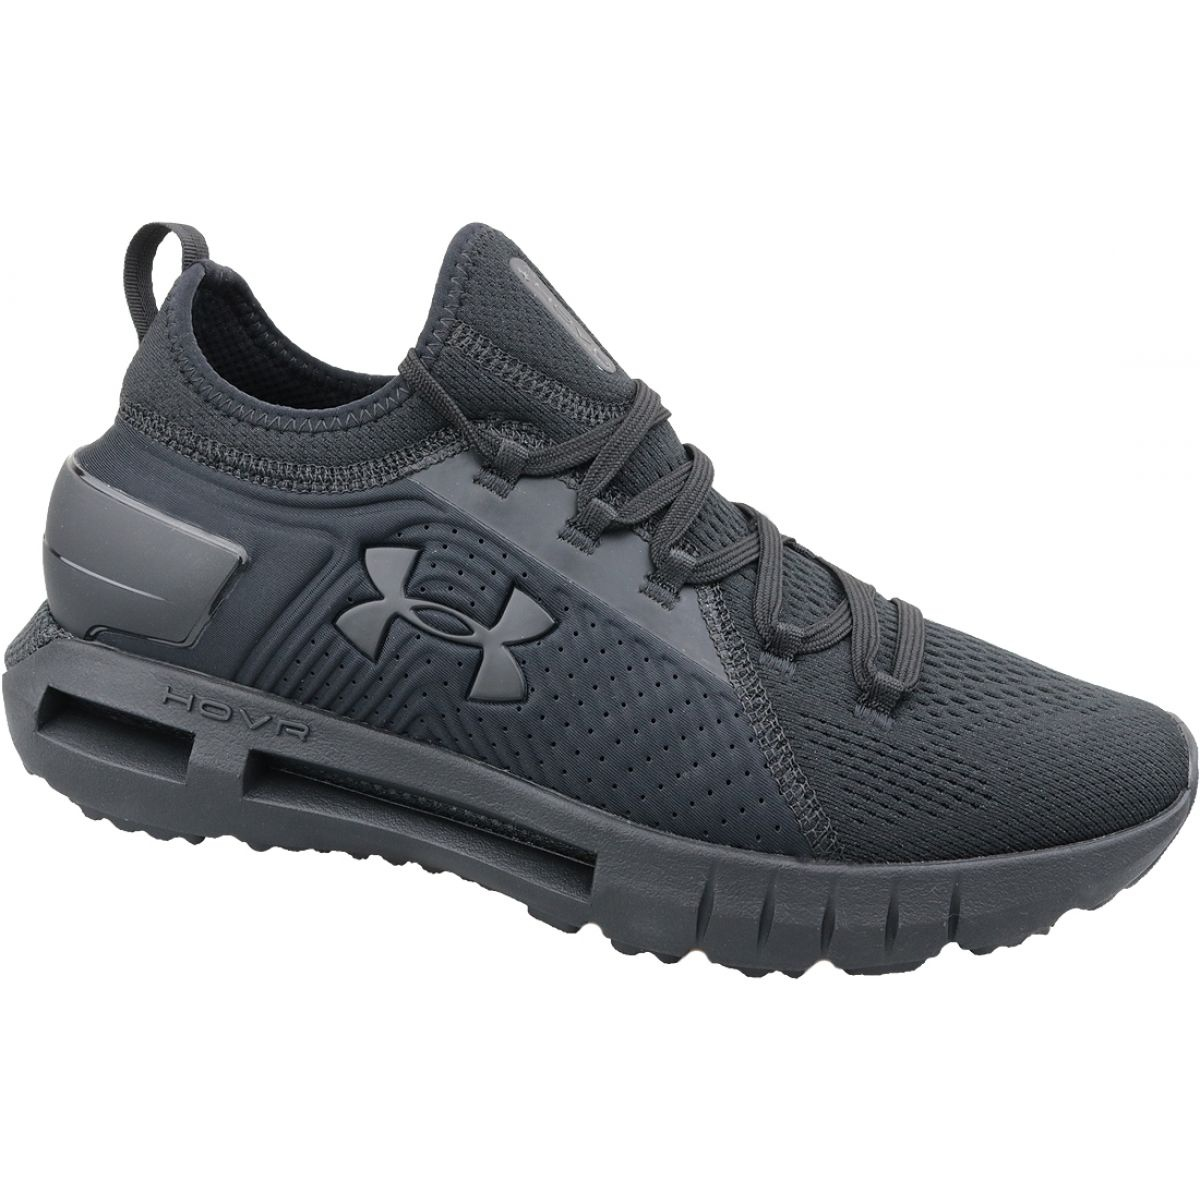 hot sale online 3a9e0 f6413 Under Armour black Under Armor Hovr Phantom Se M 3021587-002 running shoes